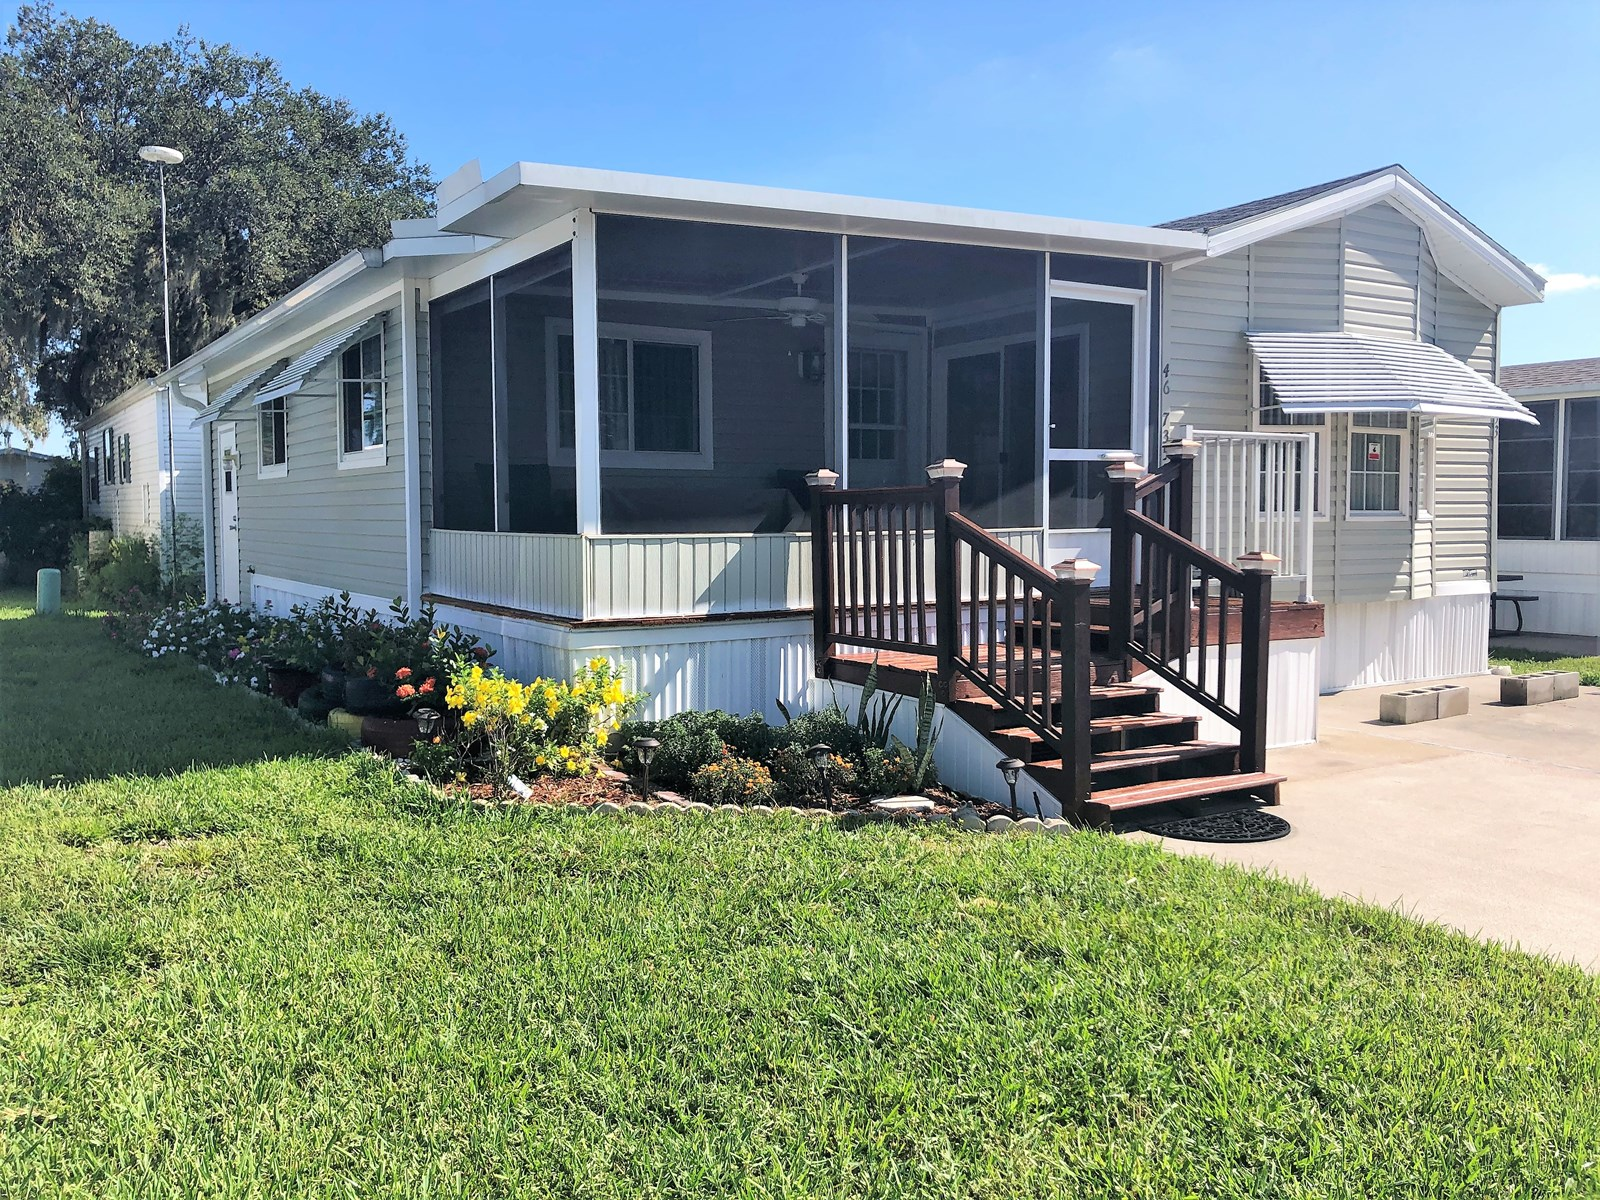 1/2 MOBILE HOME, 55+ RV RESORT COMMUNITY, CENTRAL FLORIDA